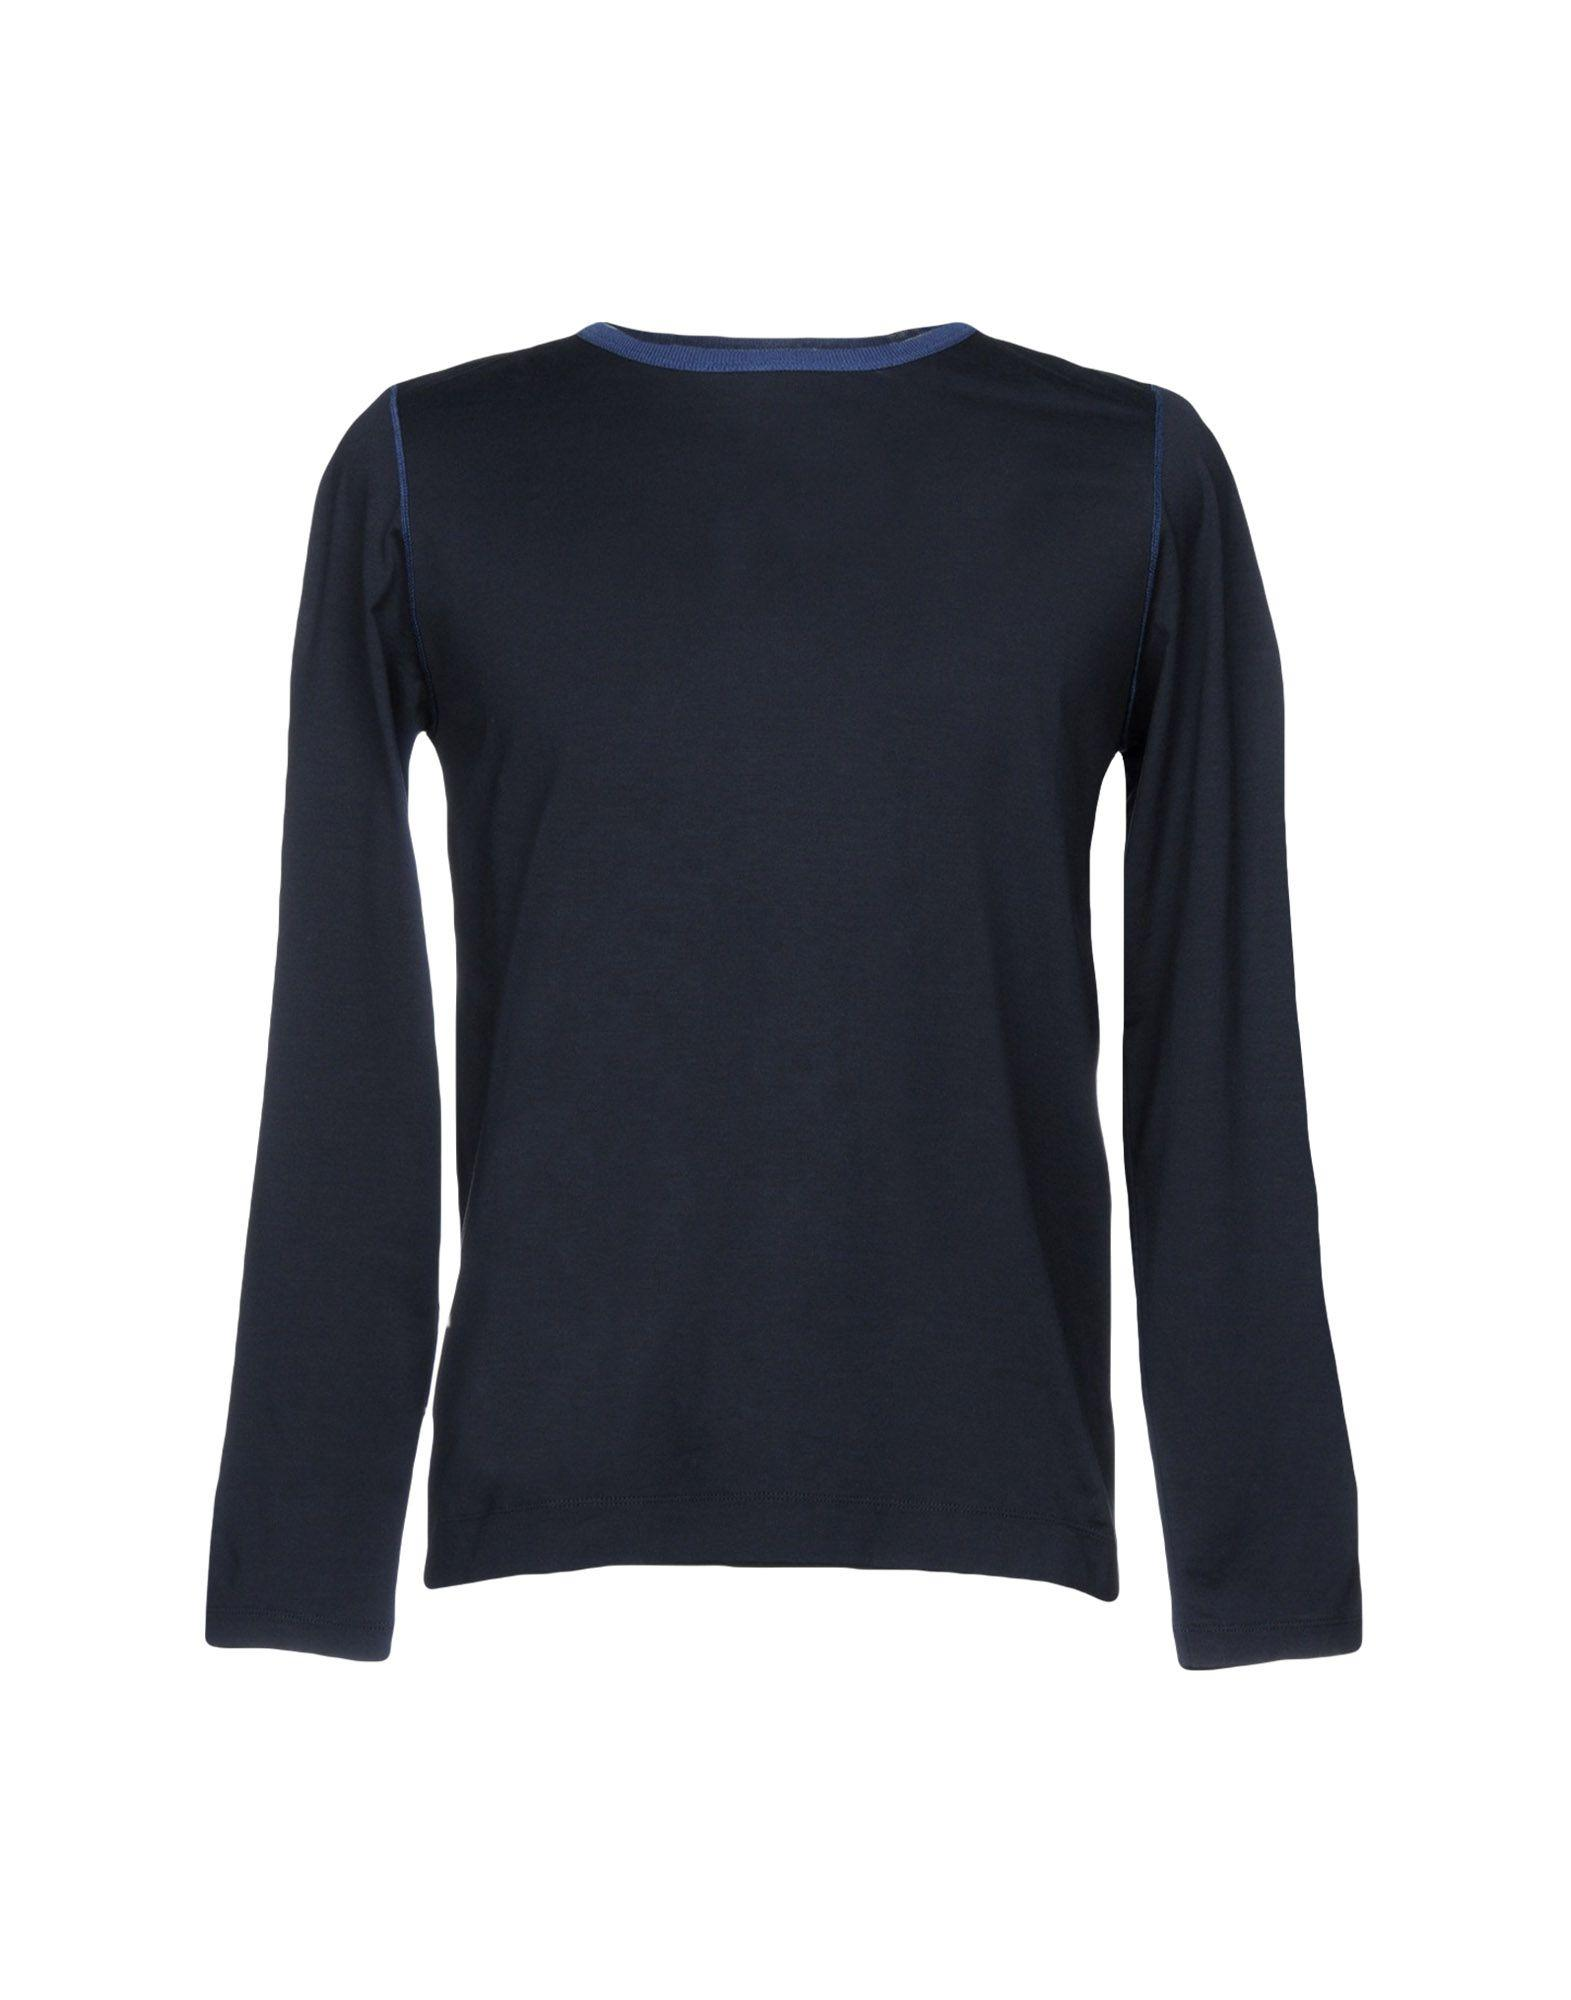 hot sale online 538ab e4b00 T-Shirt in Dark Blue